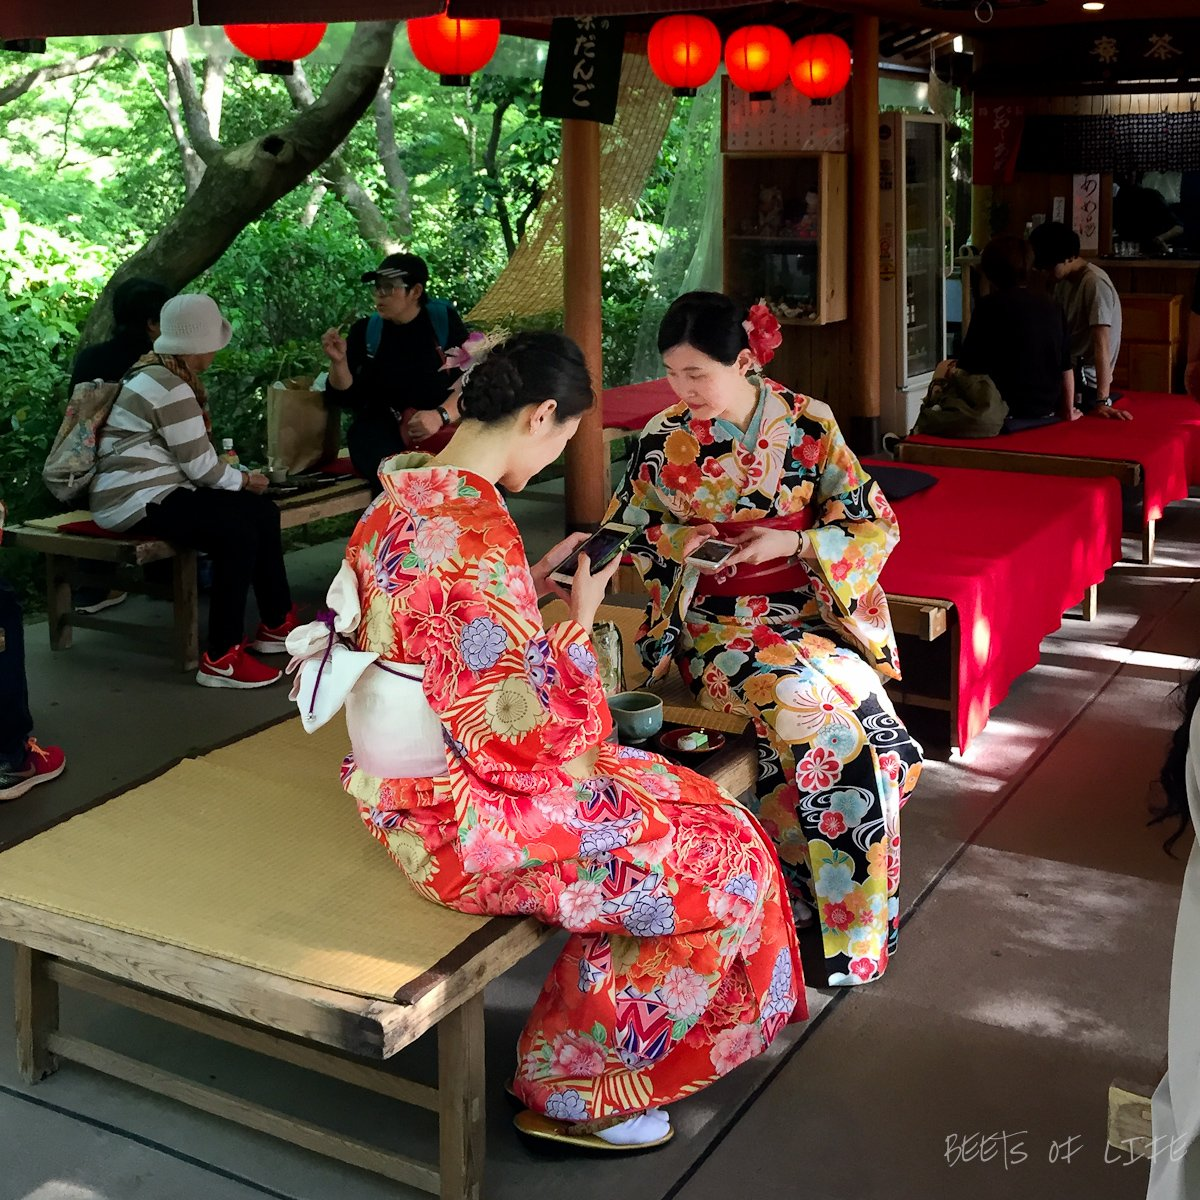 Women visiting the temple dressed in Kimonos